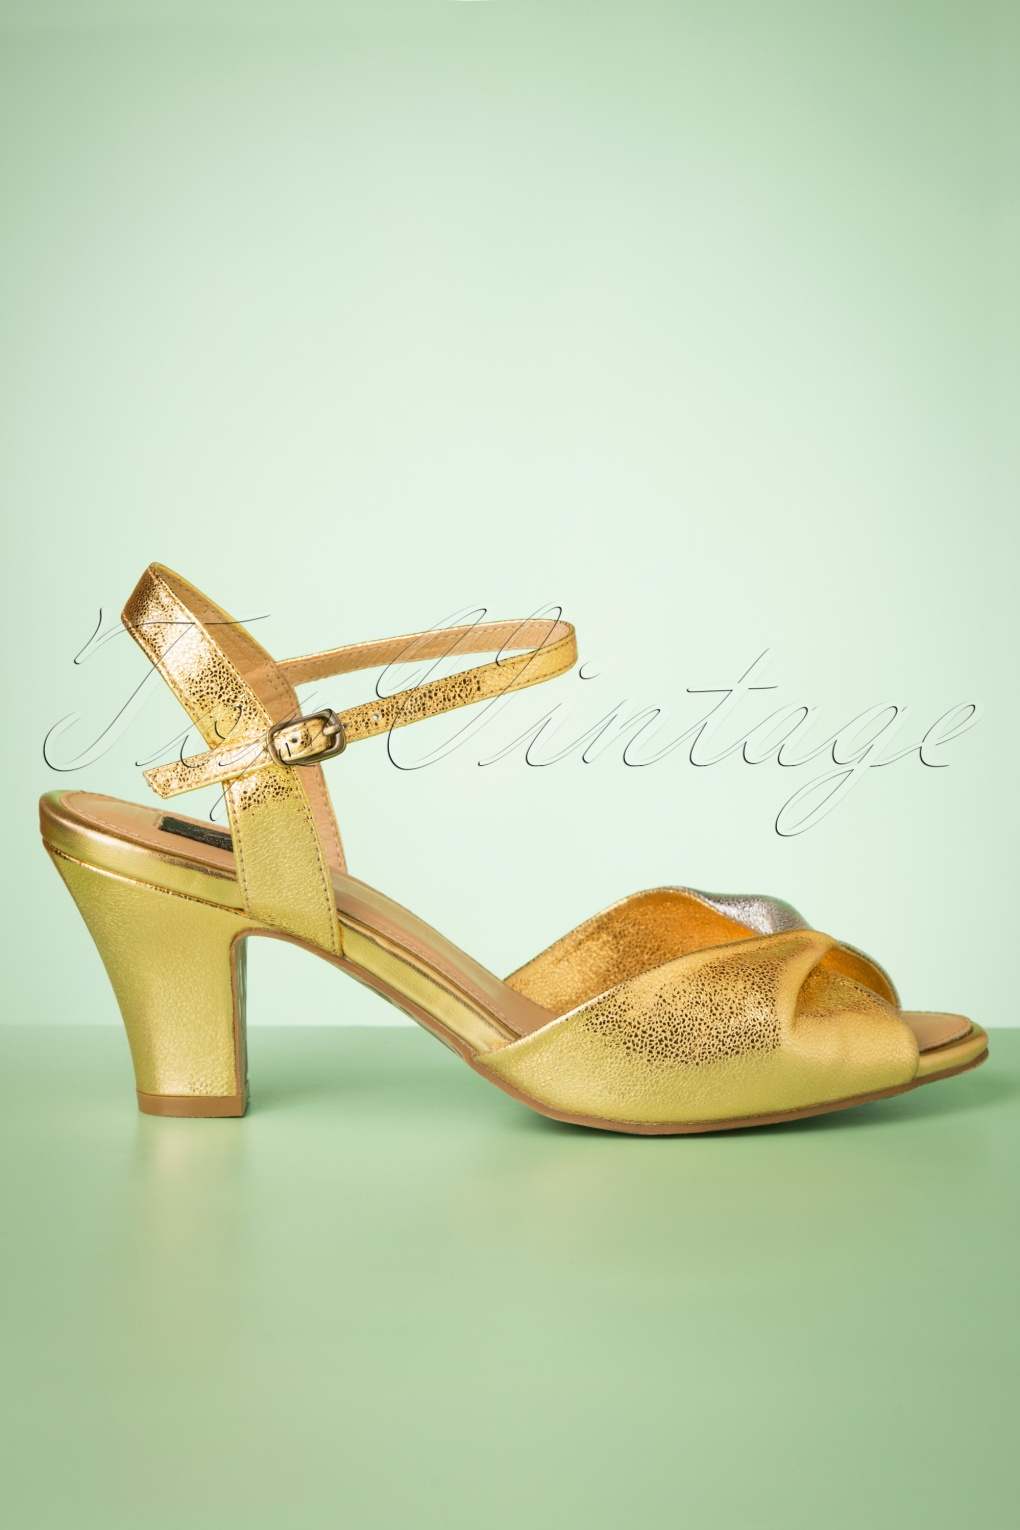 1950s Style Shoes | Heels, Flats, Saddle Shoes 50s Ava Its A Two Tone Thing Sandals in Metallic Gold and Silver �107.70 AT vintagedancer.com